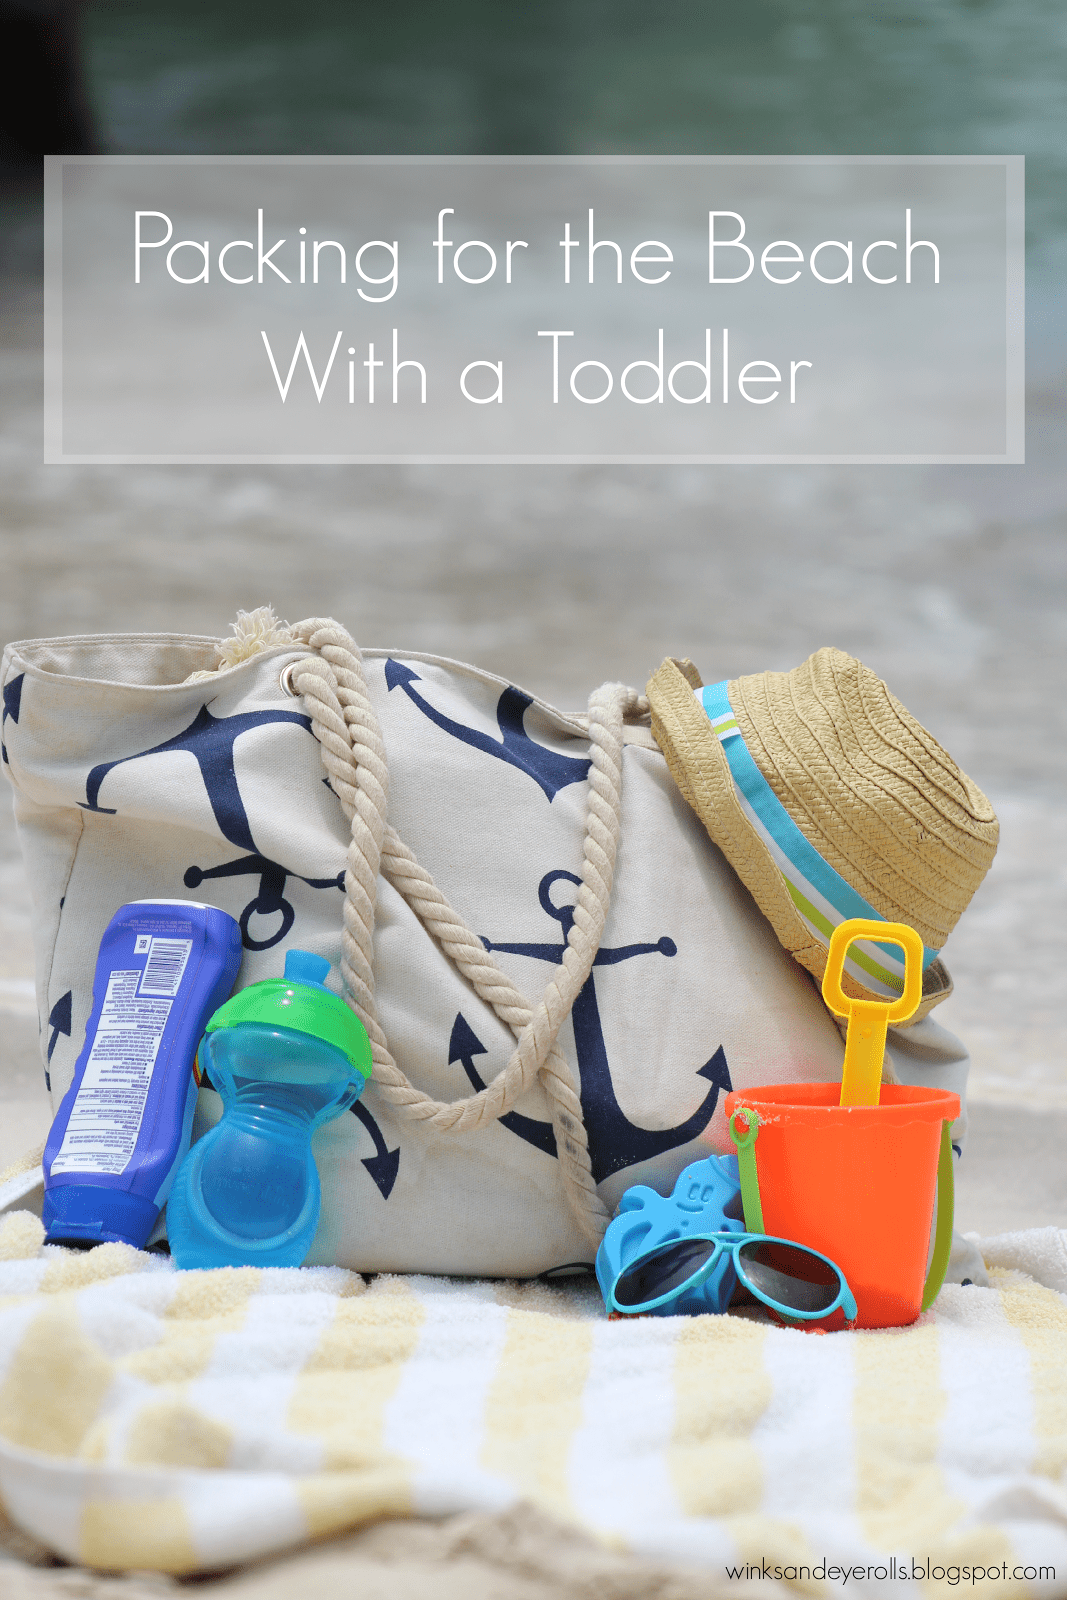 Packing for the beach with a toddler